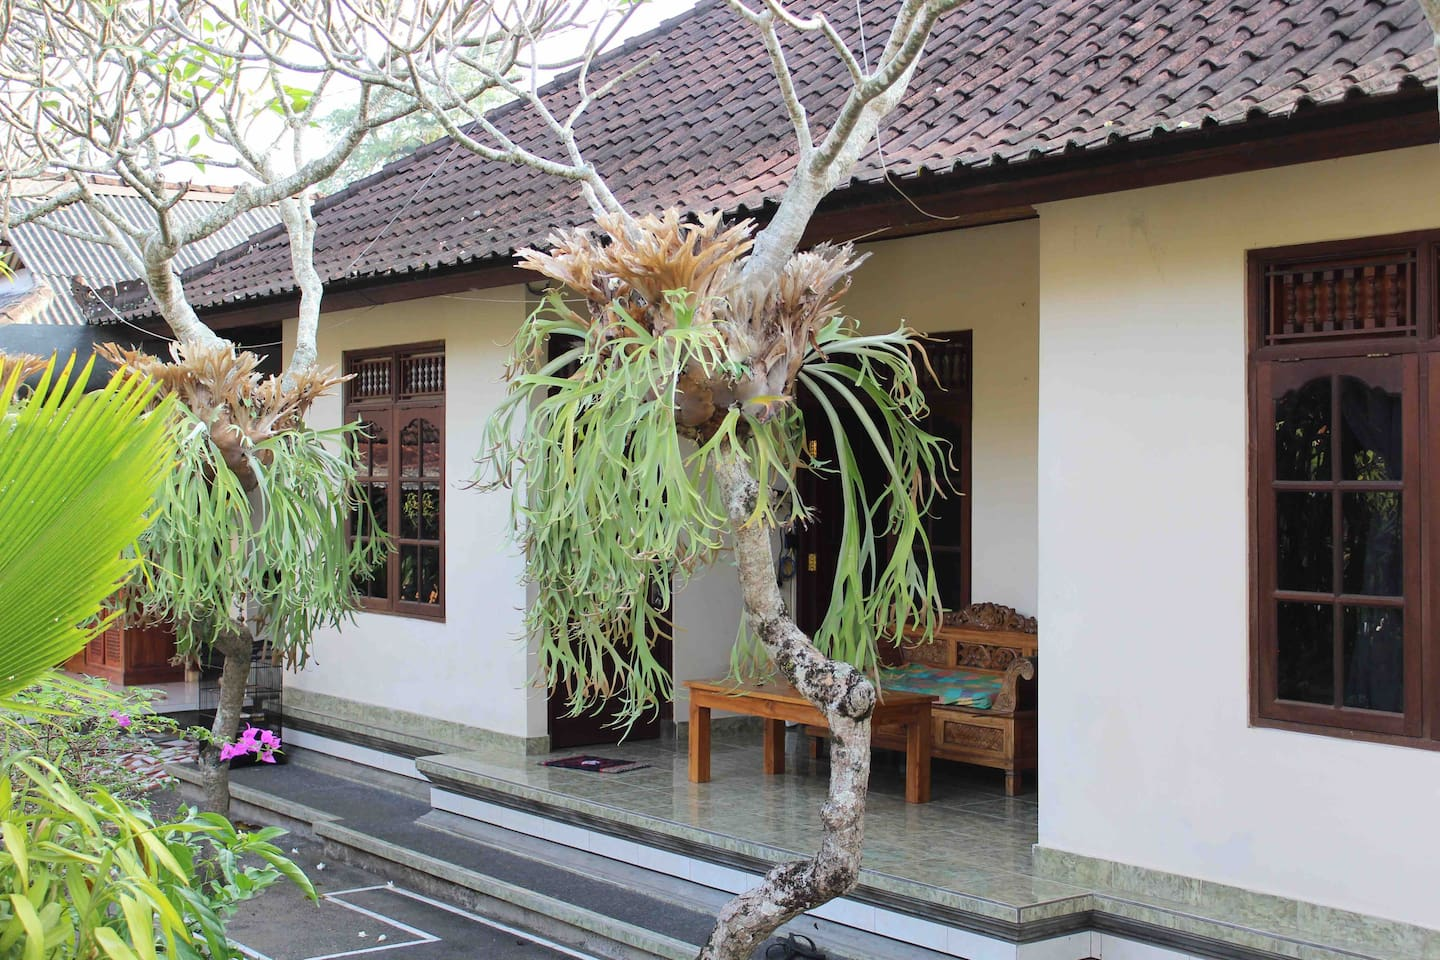 the environment that is filled with Balinese families and also cleanliness and natural beauty are maintained making the atmosphere even more enjoyable for a short or long stay